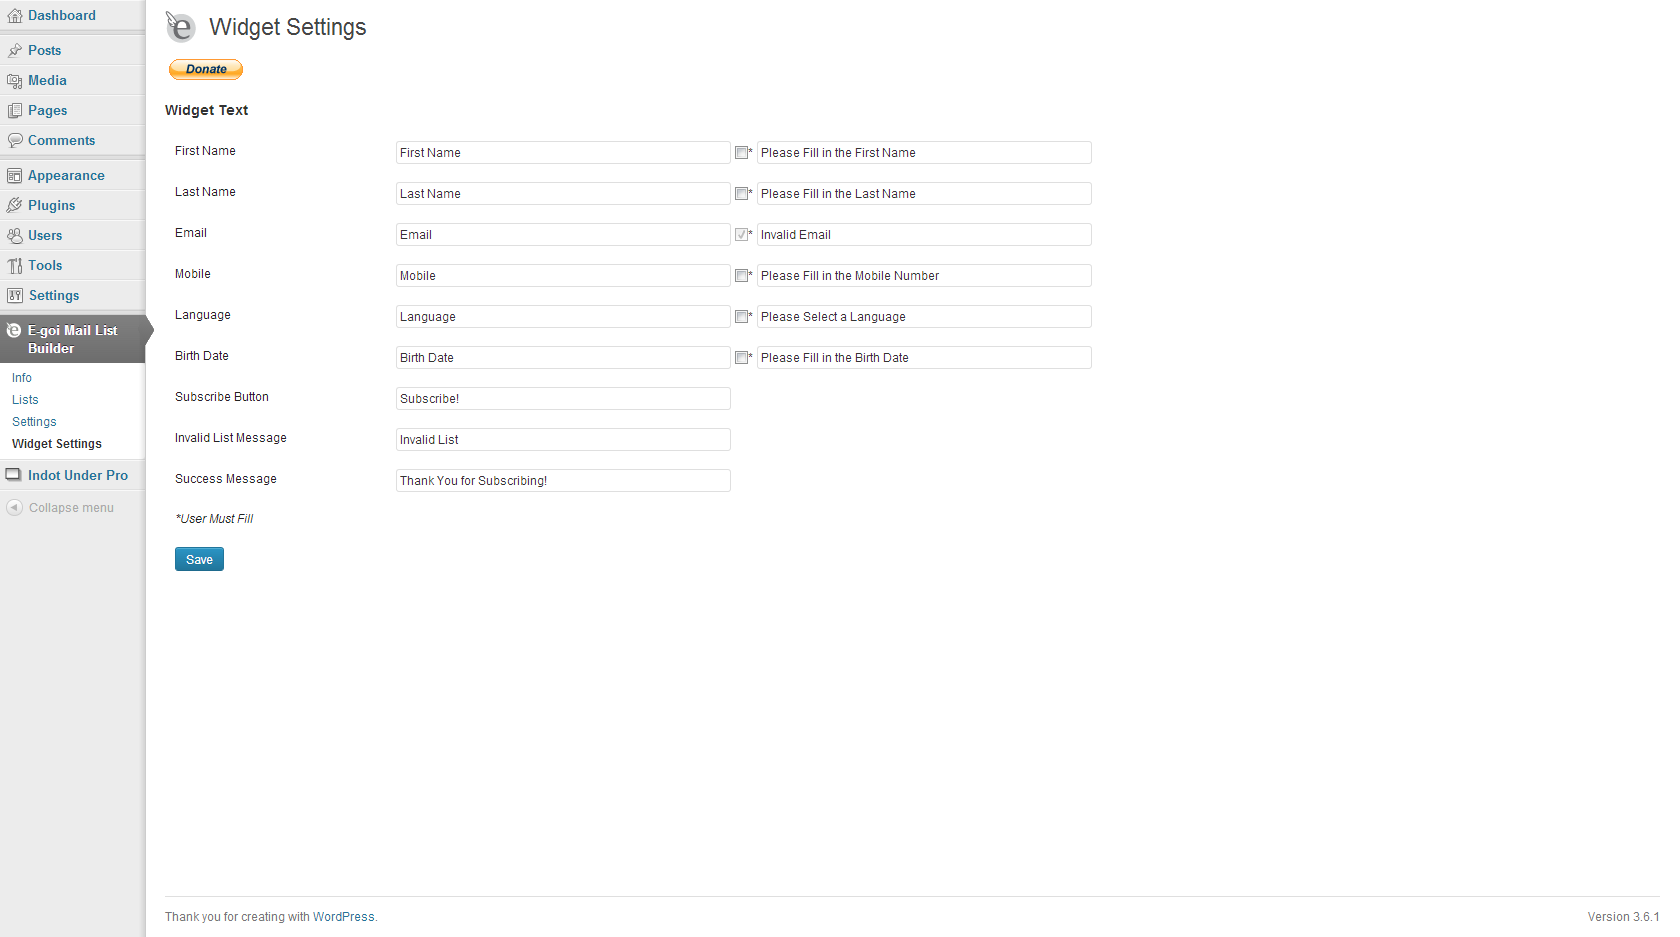 e-goi-mail-list-builder screenshot 8